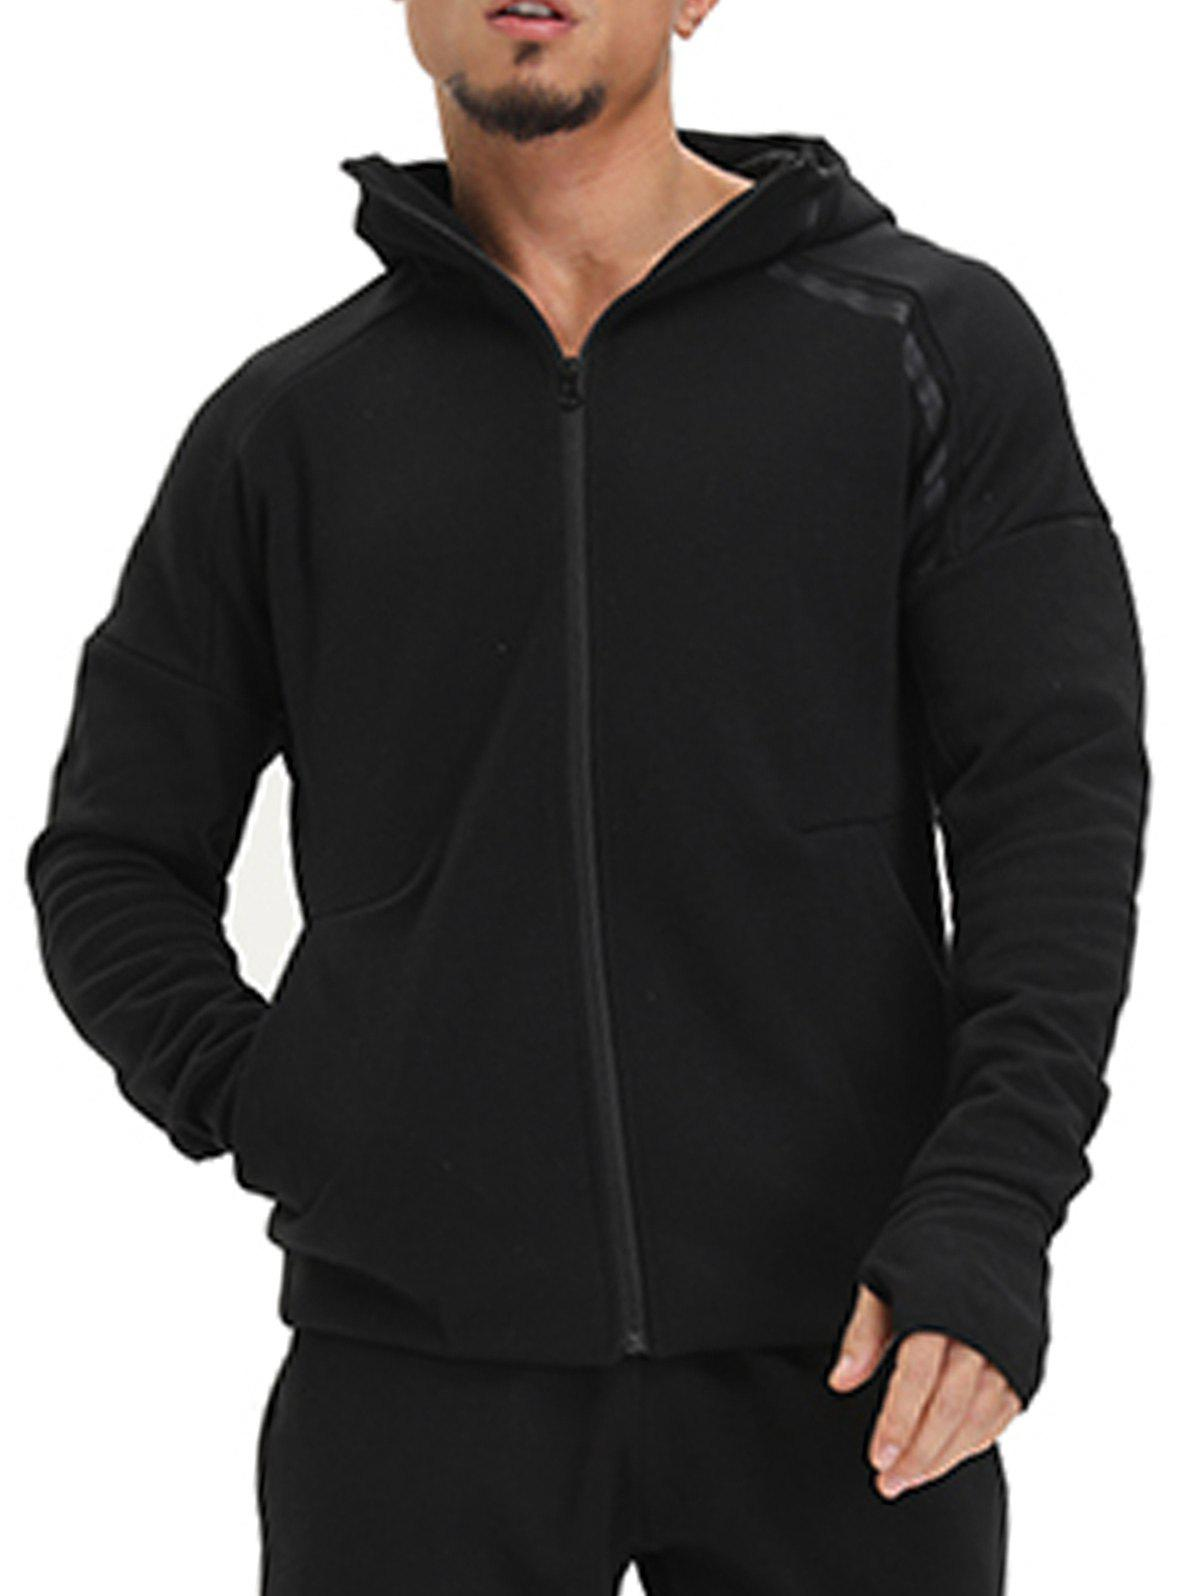 Sweat à capuche Zip - Noir XL